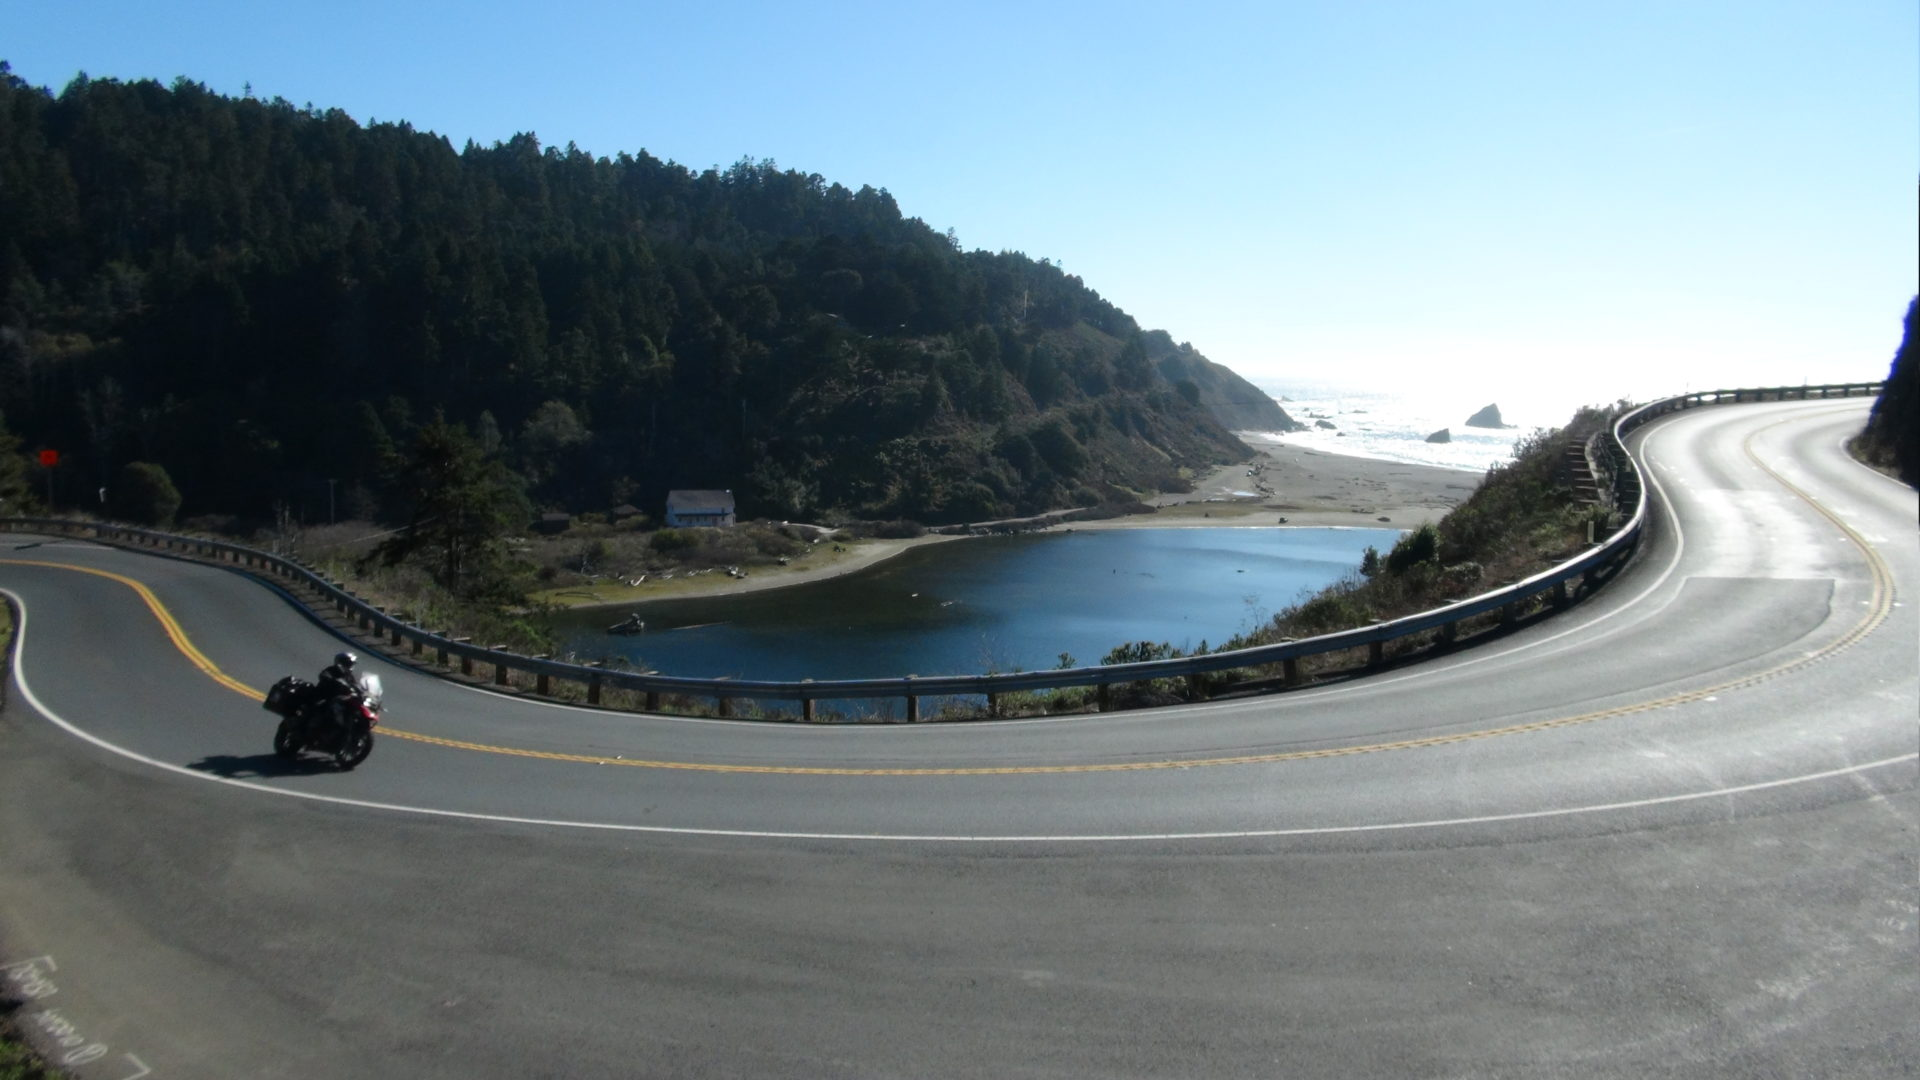 Pacific coast highway motorbike California